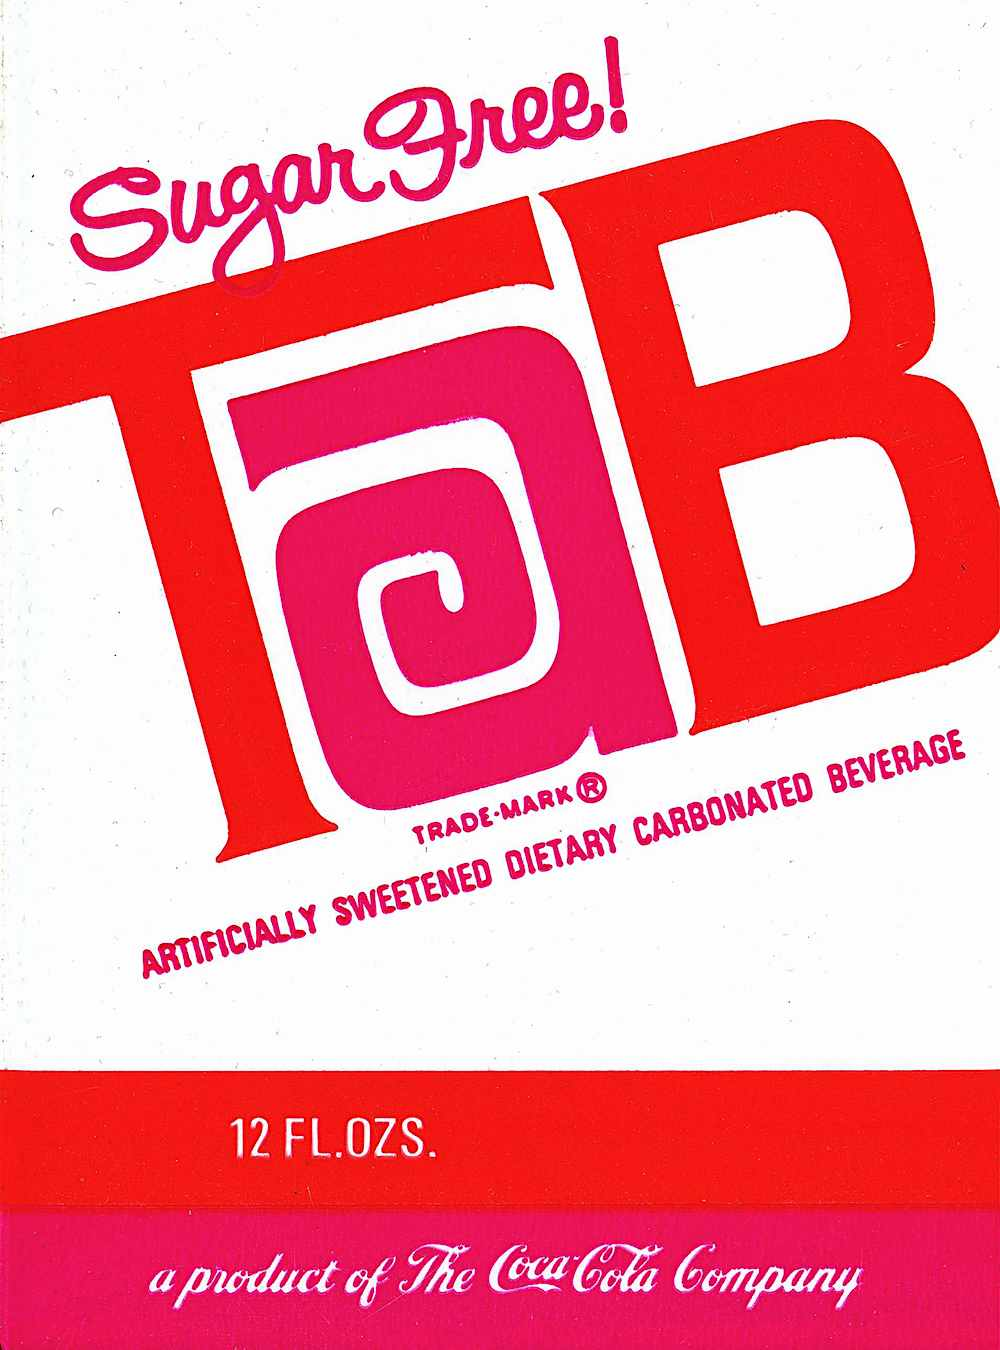 1970 TaB soft drink logo in pink and red